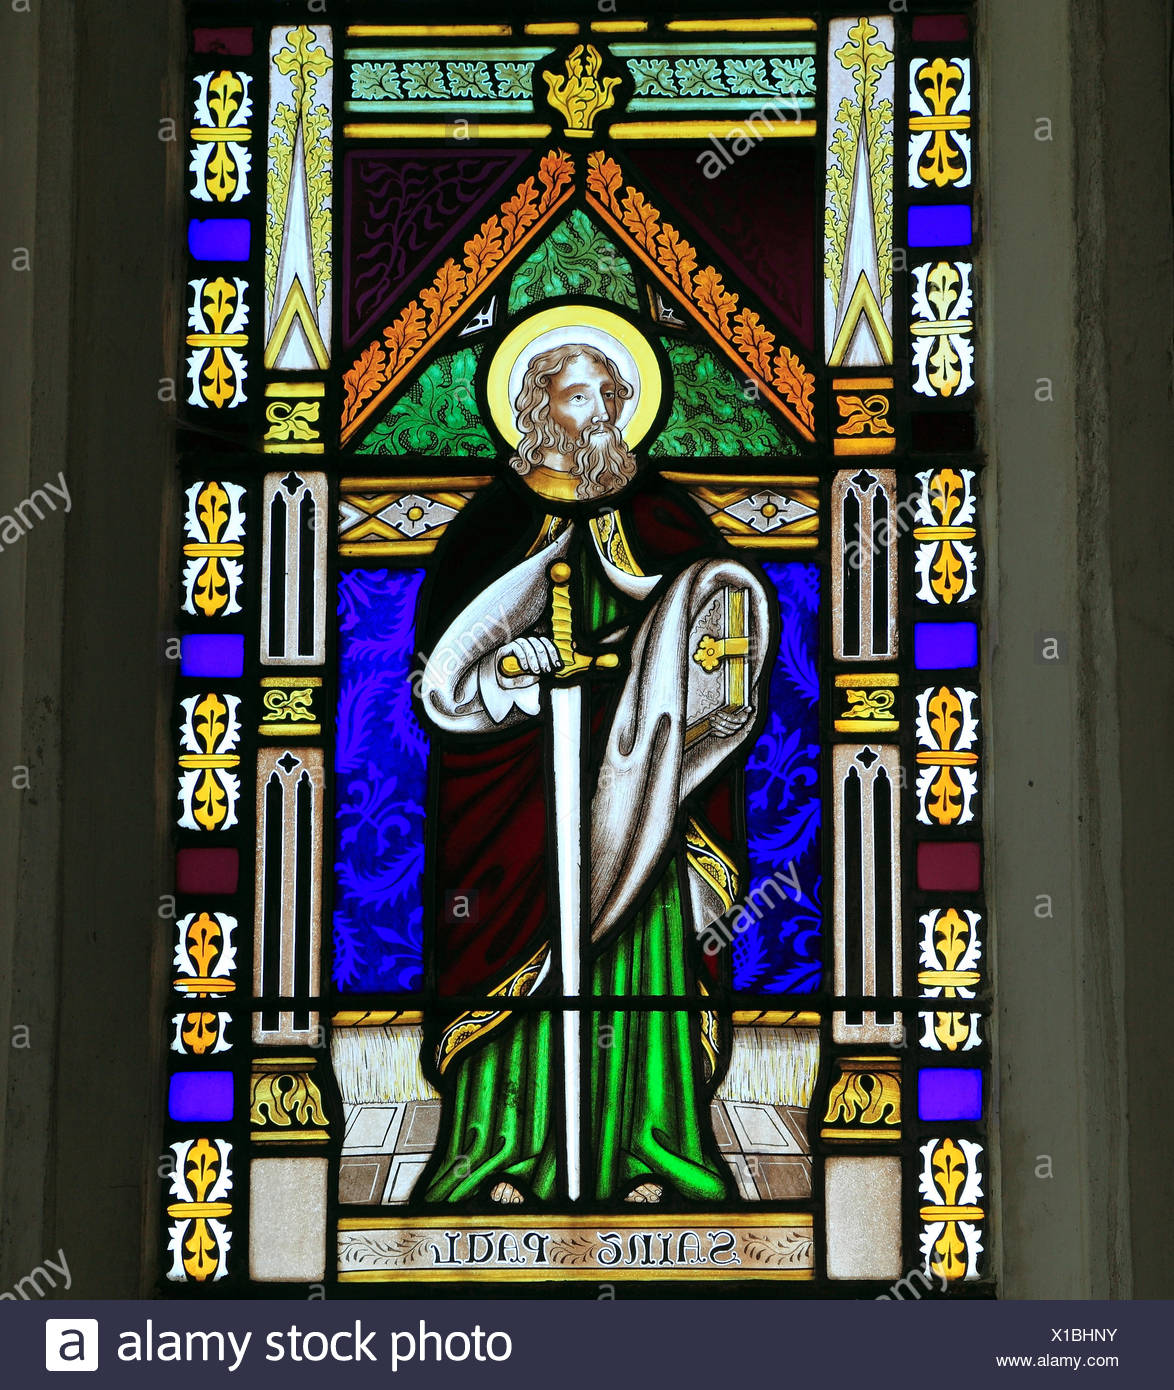 St. Paul, stained glass window by Joseph Grant of Costessey, 1856, Wighton, Norfolk, England UK, saint, saints - Stock Image